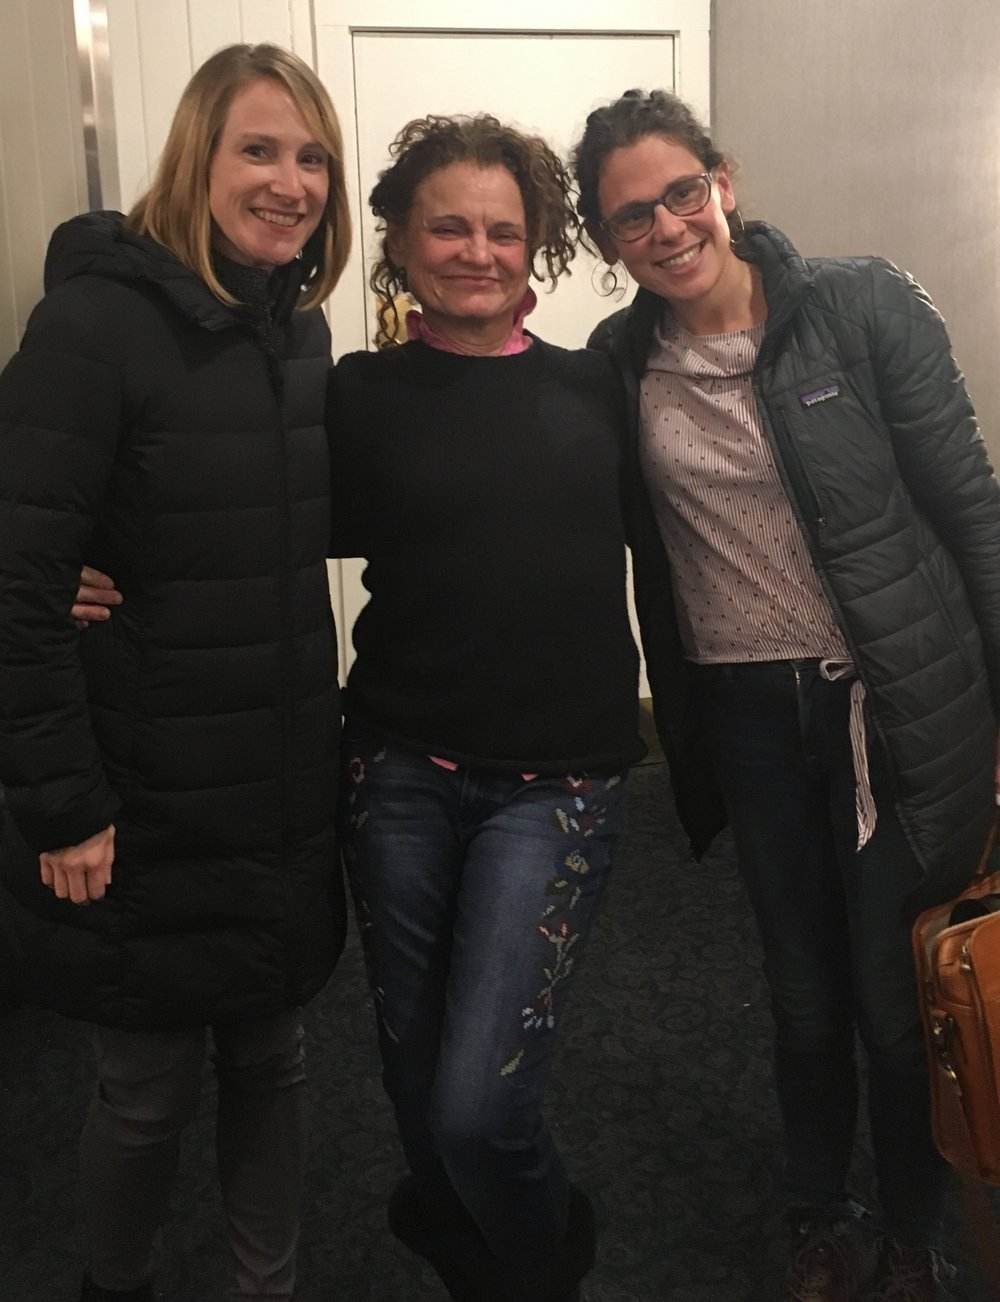 This photo was taken at a Vermont Businesses for Social Responsibility gathering in Montpelier. Sara Newmark of Brattleboro's New Chapter, a highly responsible Brattleboro-based company, appears on the right .